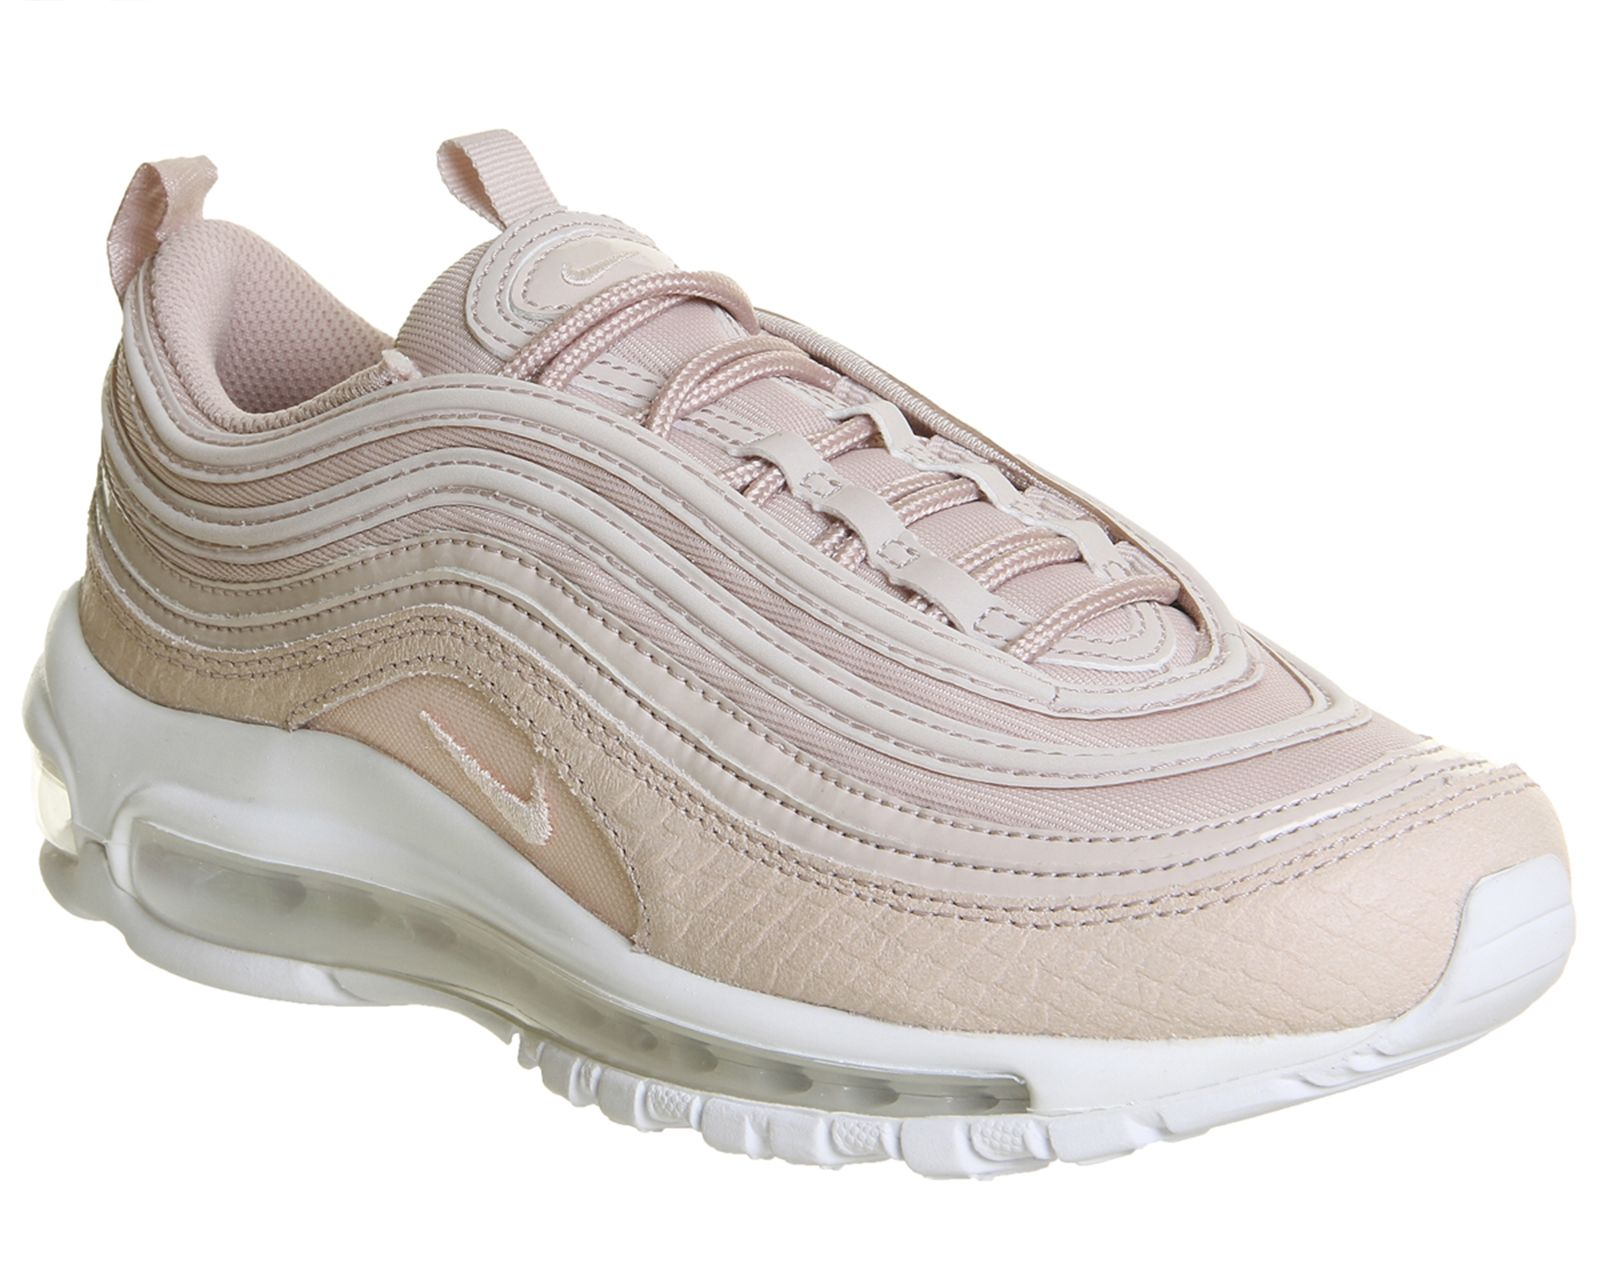 Office Nike Air Max 97 COBBLESTONE Sale Online Store Best Sale Online Outlet Limited Edition Cheap Sale Best Wholesale Really 9vPVOJ